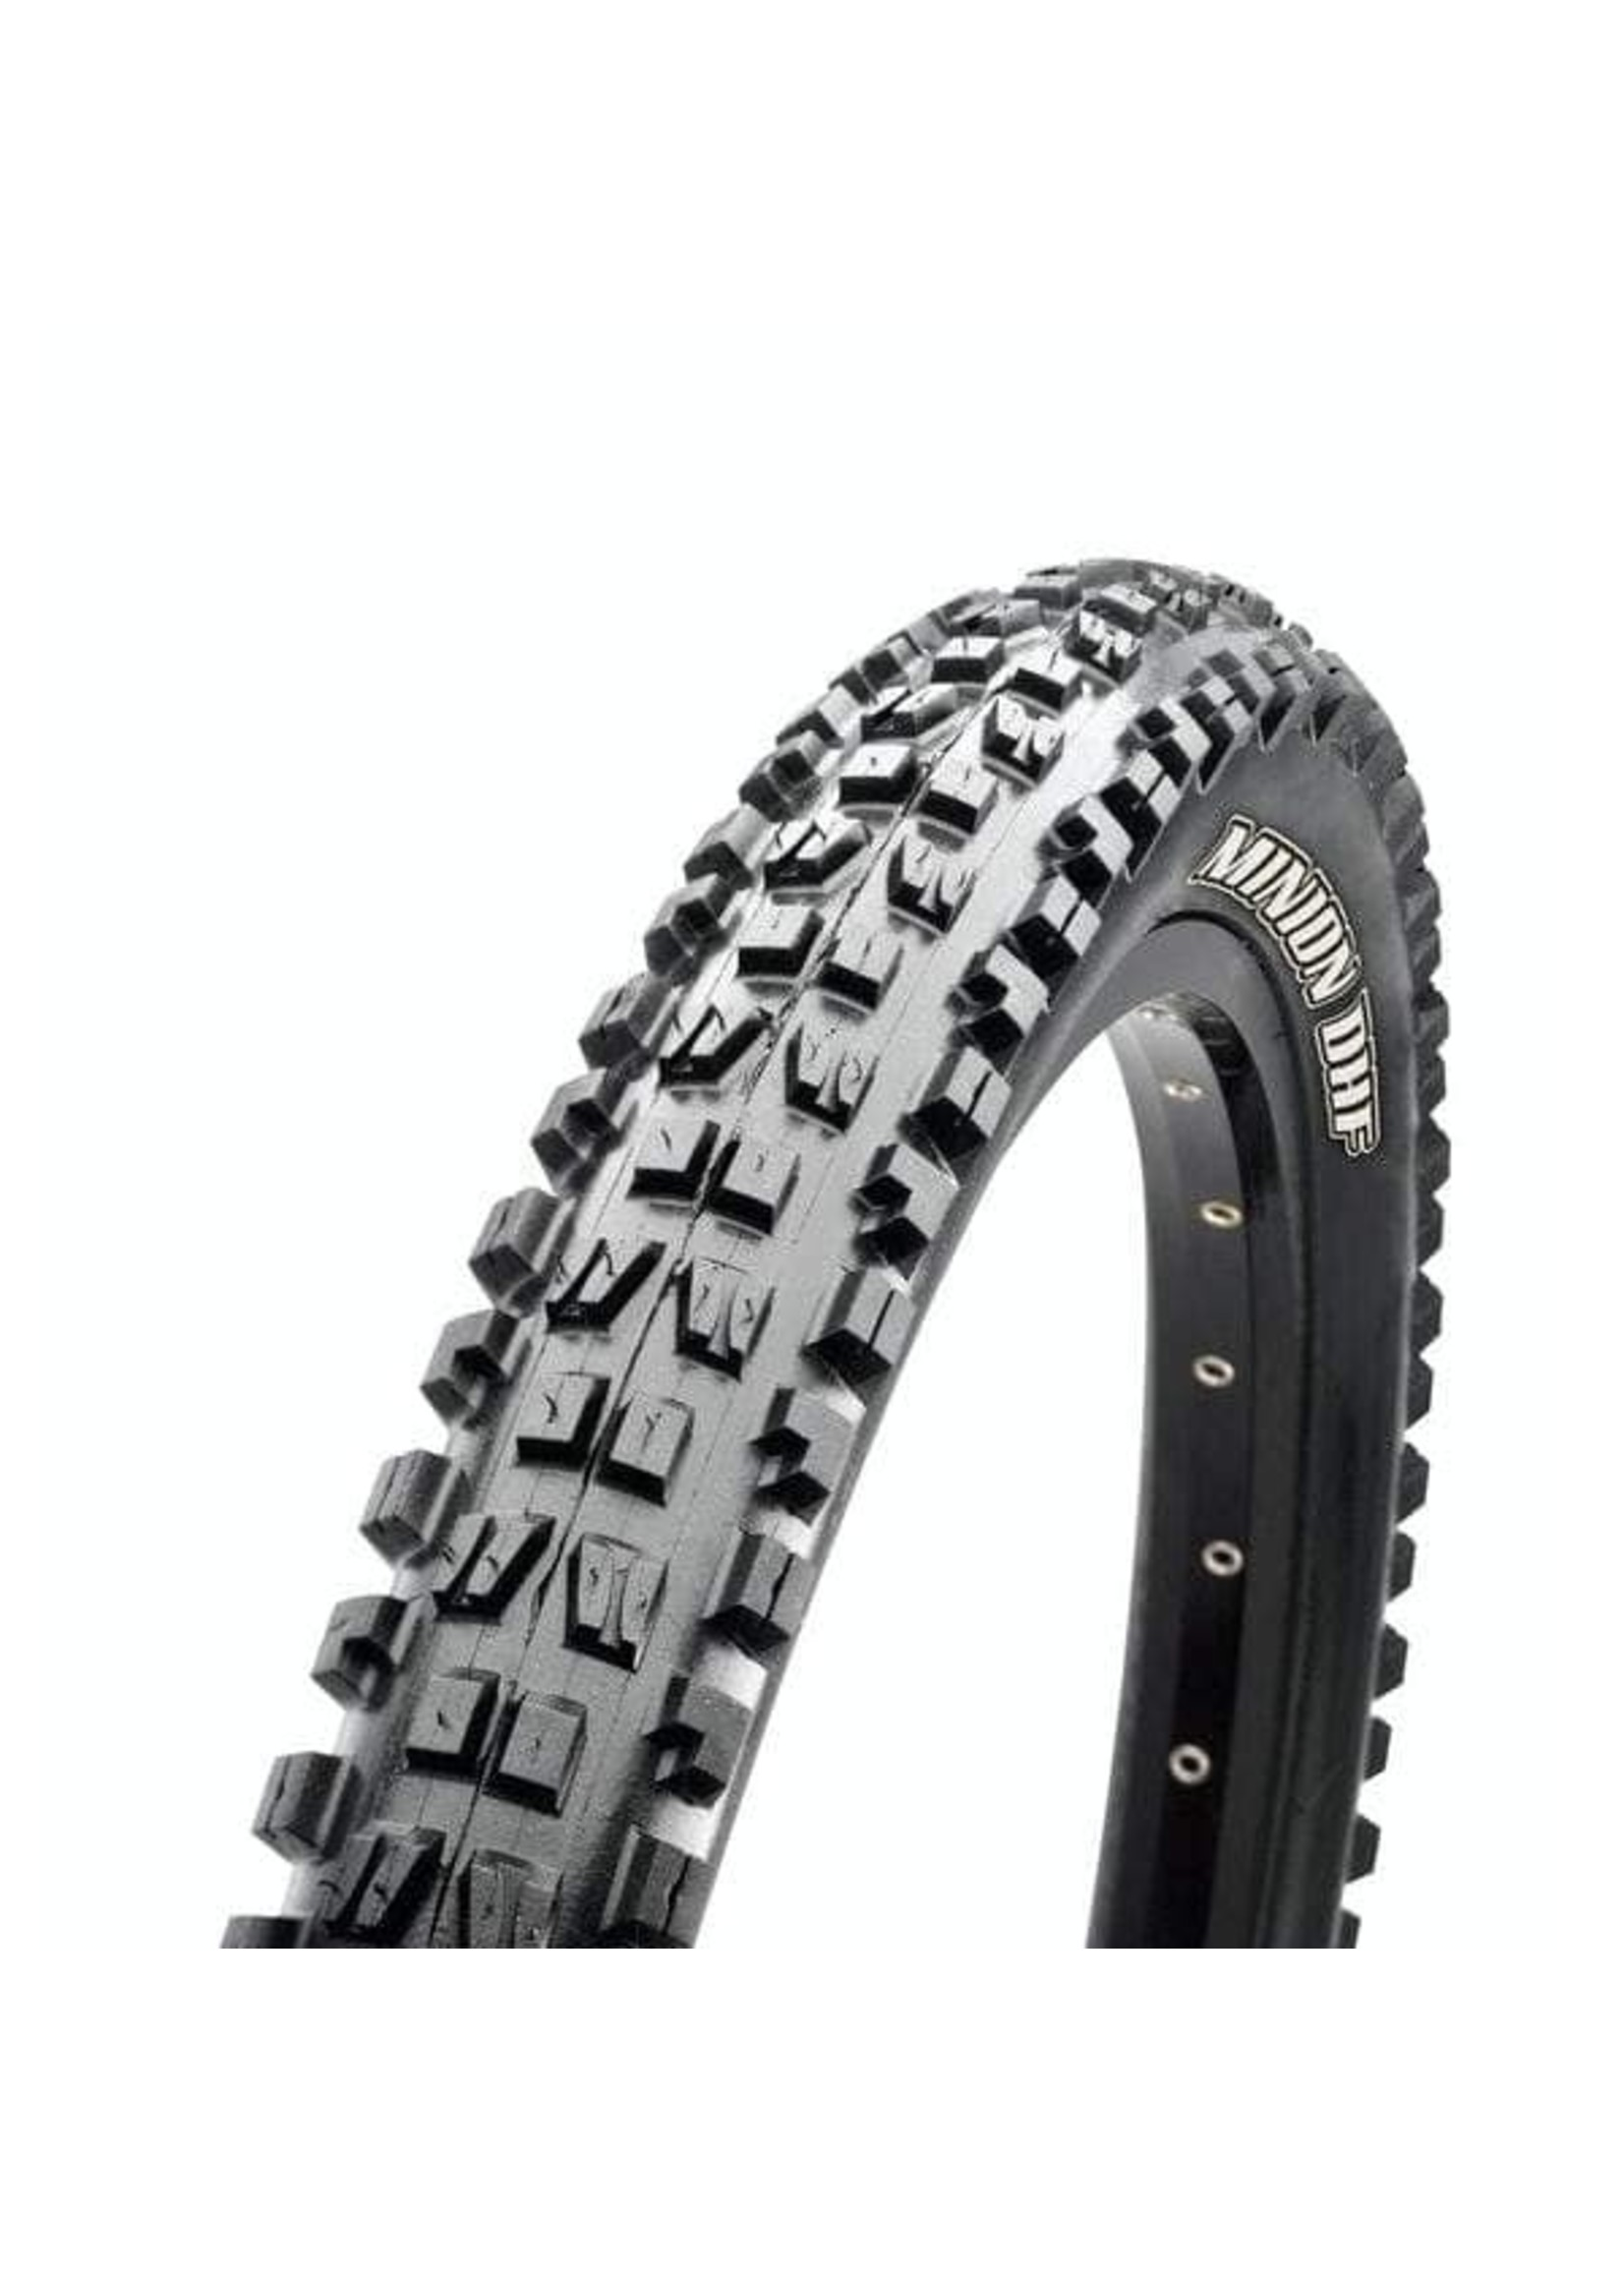 Maxxis MAXXIS TIRE MOUNTAIN MINION DHF 29X2.50 F60TPI DC EXO TR